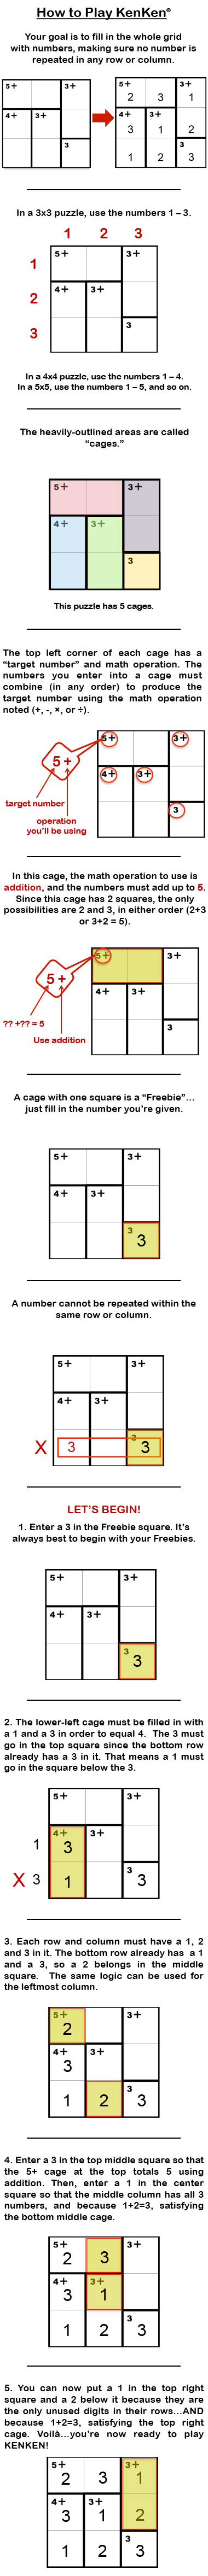 Kenken Puzzle Rules - How To Play This Amazing Puzzle & Brain Teaser! - Printable Kenken Puzzles 9X9